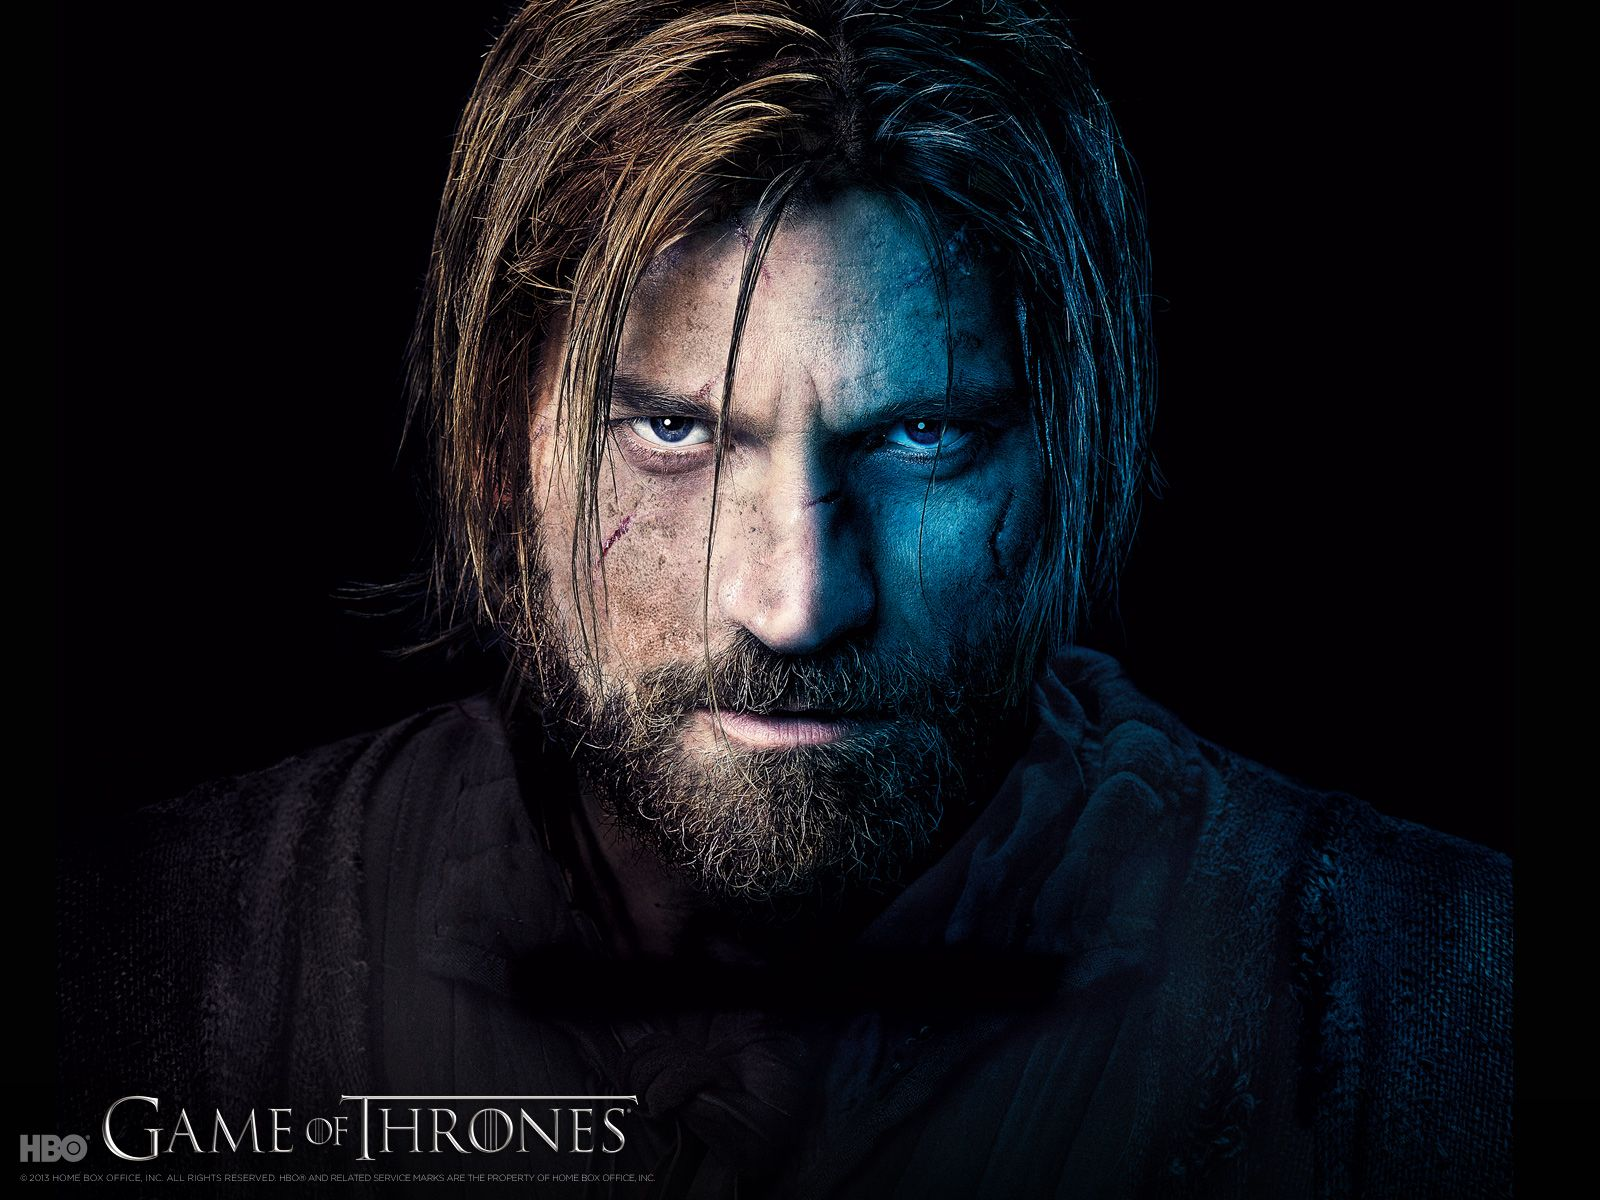 Game Of Thrones Season 3 Character Posters Revealed Photo Emilia Clarke Shows Off Her Light And Dark Side On The Poster For New